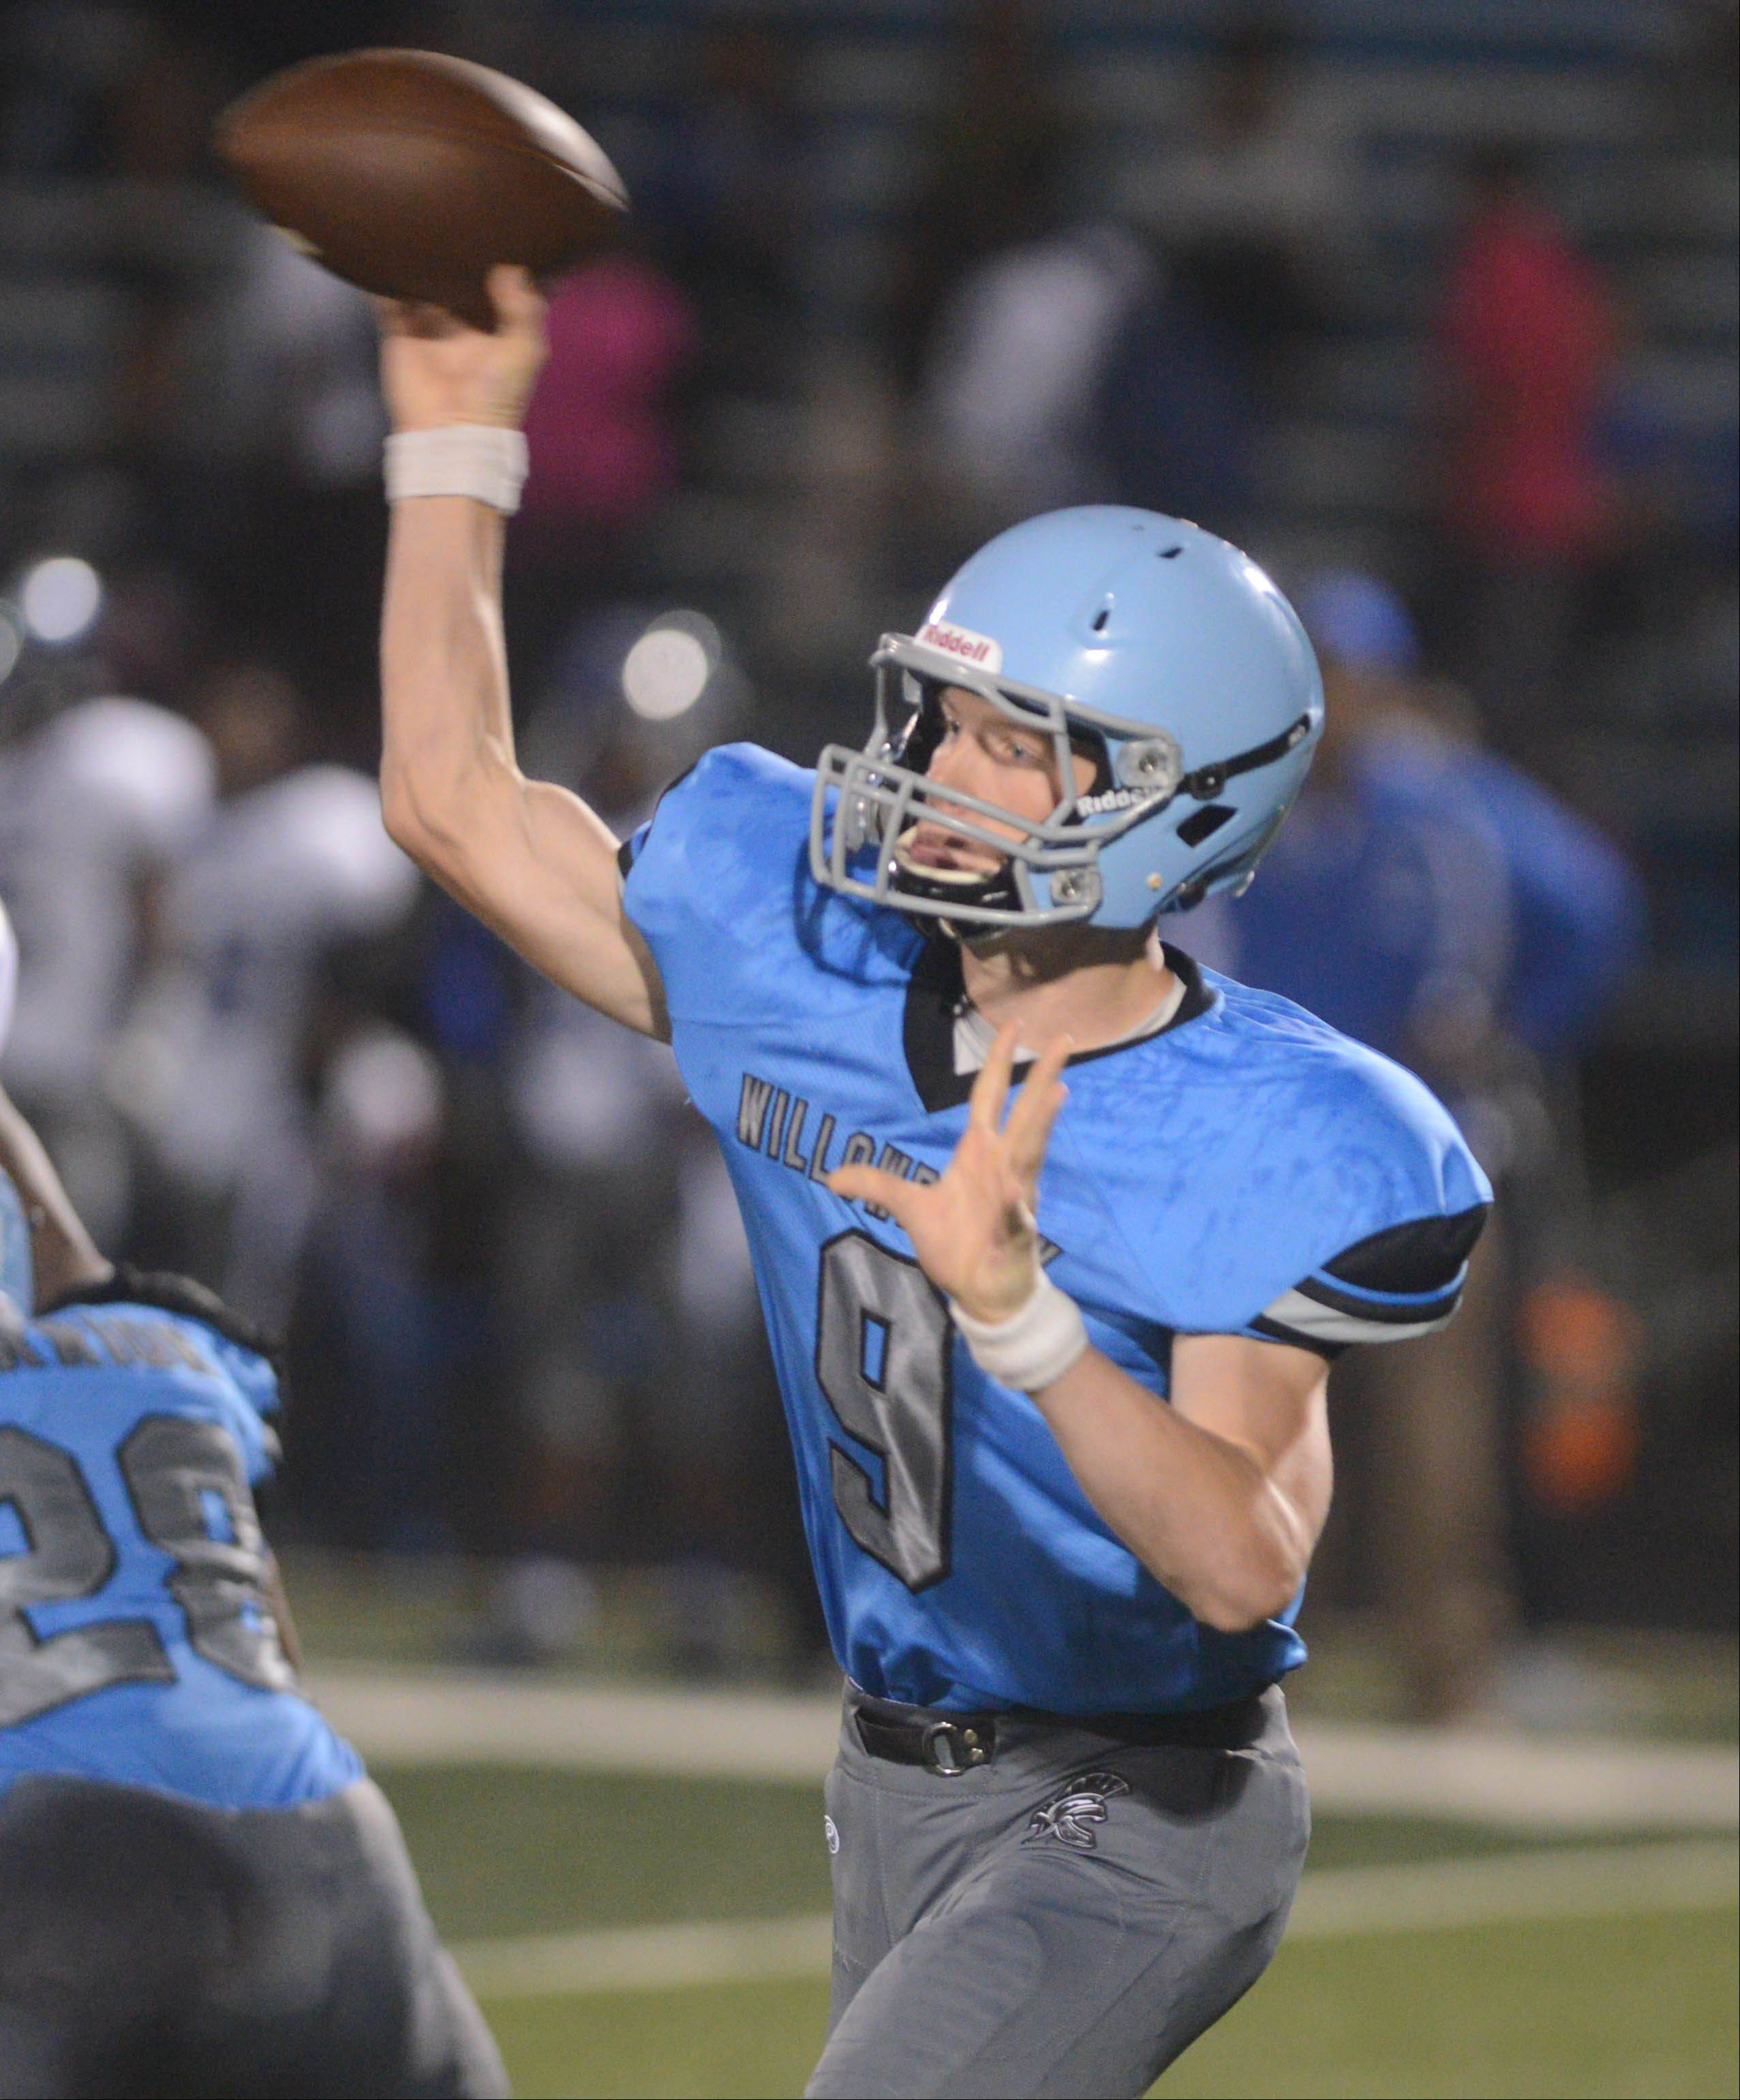 Willowbrook quarterback Brian Johnson (#9) fires one during the Proviso East at Willowbrook football game Friday in Villa Park